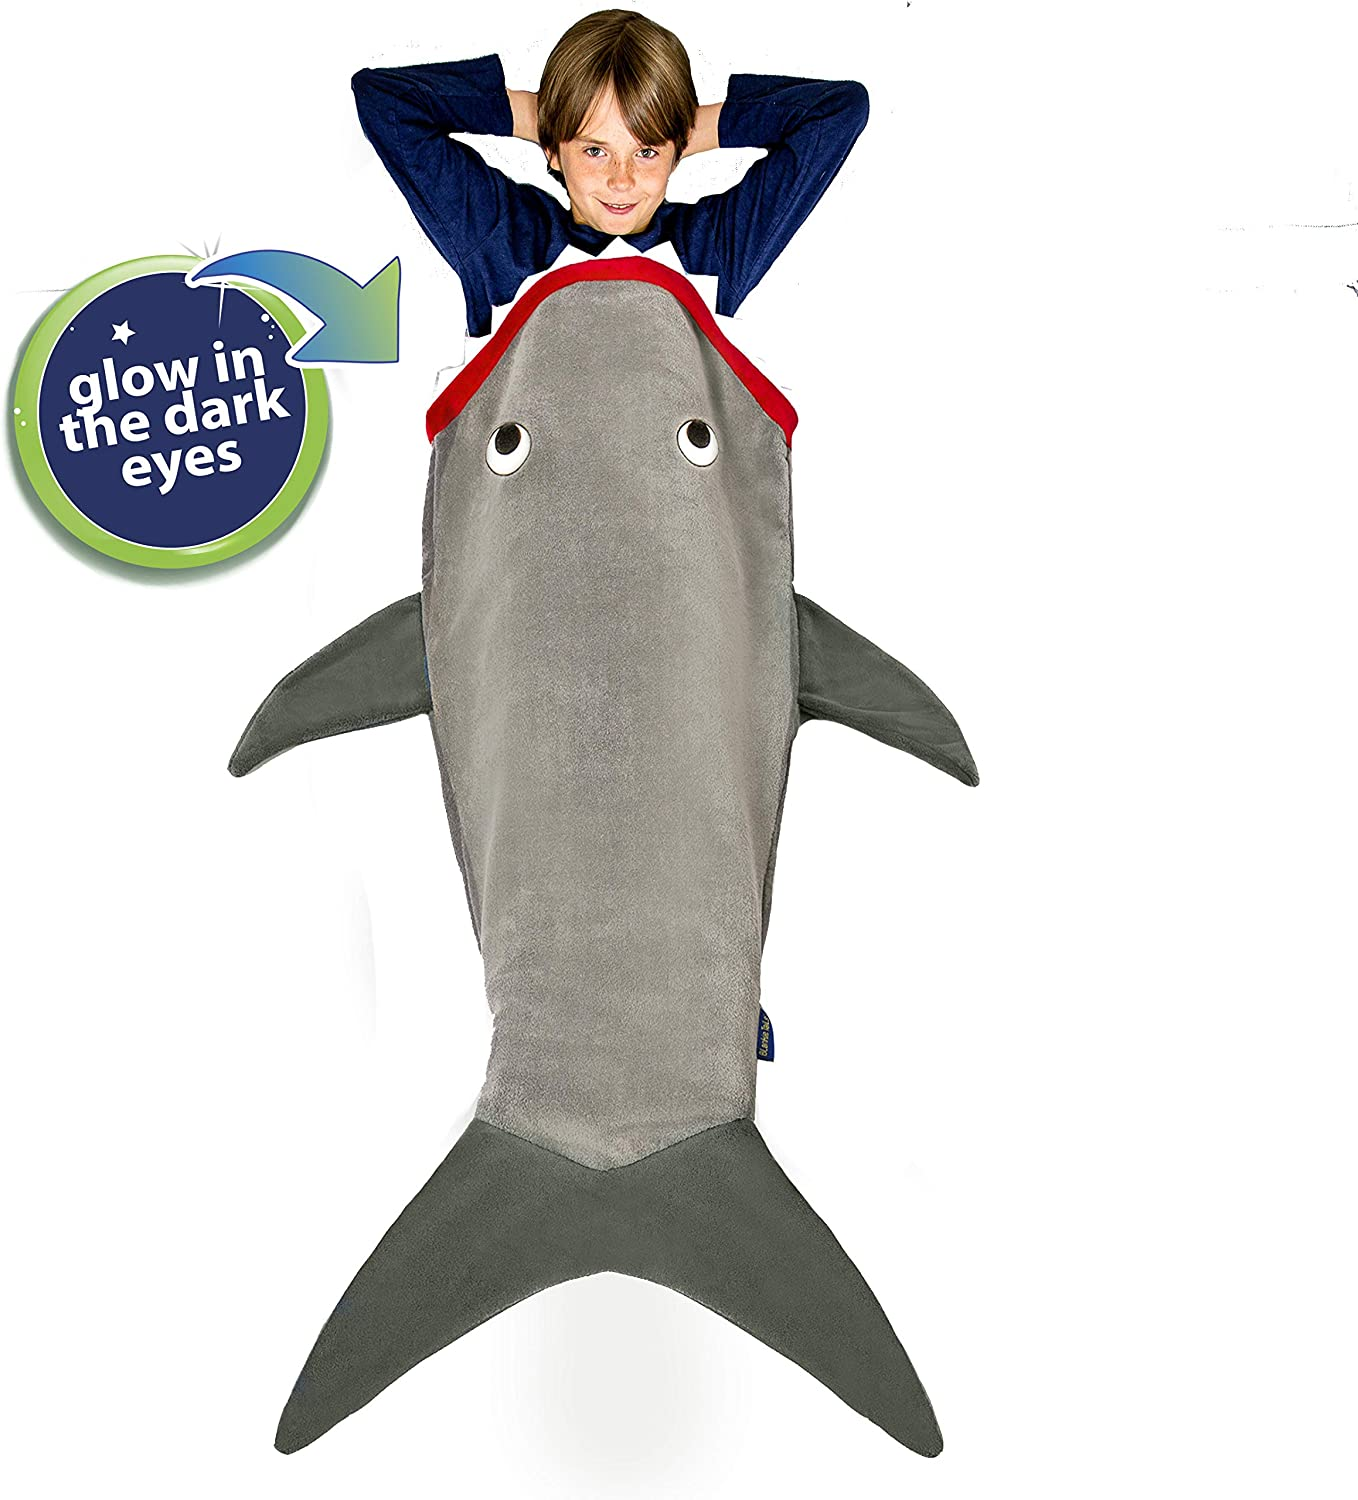 Blankie Tails   Shark Blanket, New Shark Tail Double Sided Super Soft and Cozy Minky Fleece Blanket, Machine Washable Wearable Blanket (56'' H x 27'' (Kids Ages 5-12), Glow in The Dark - Gray)